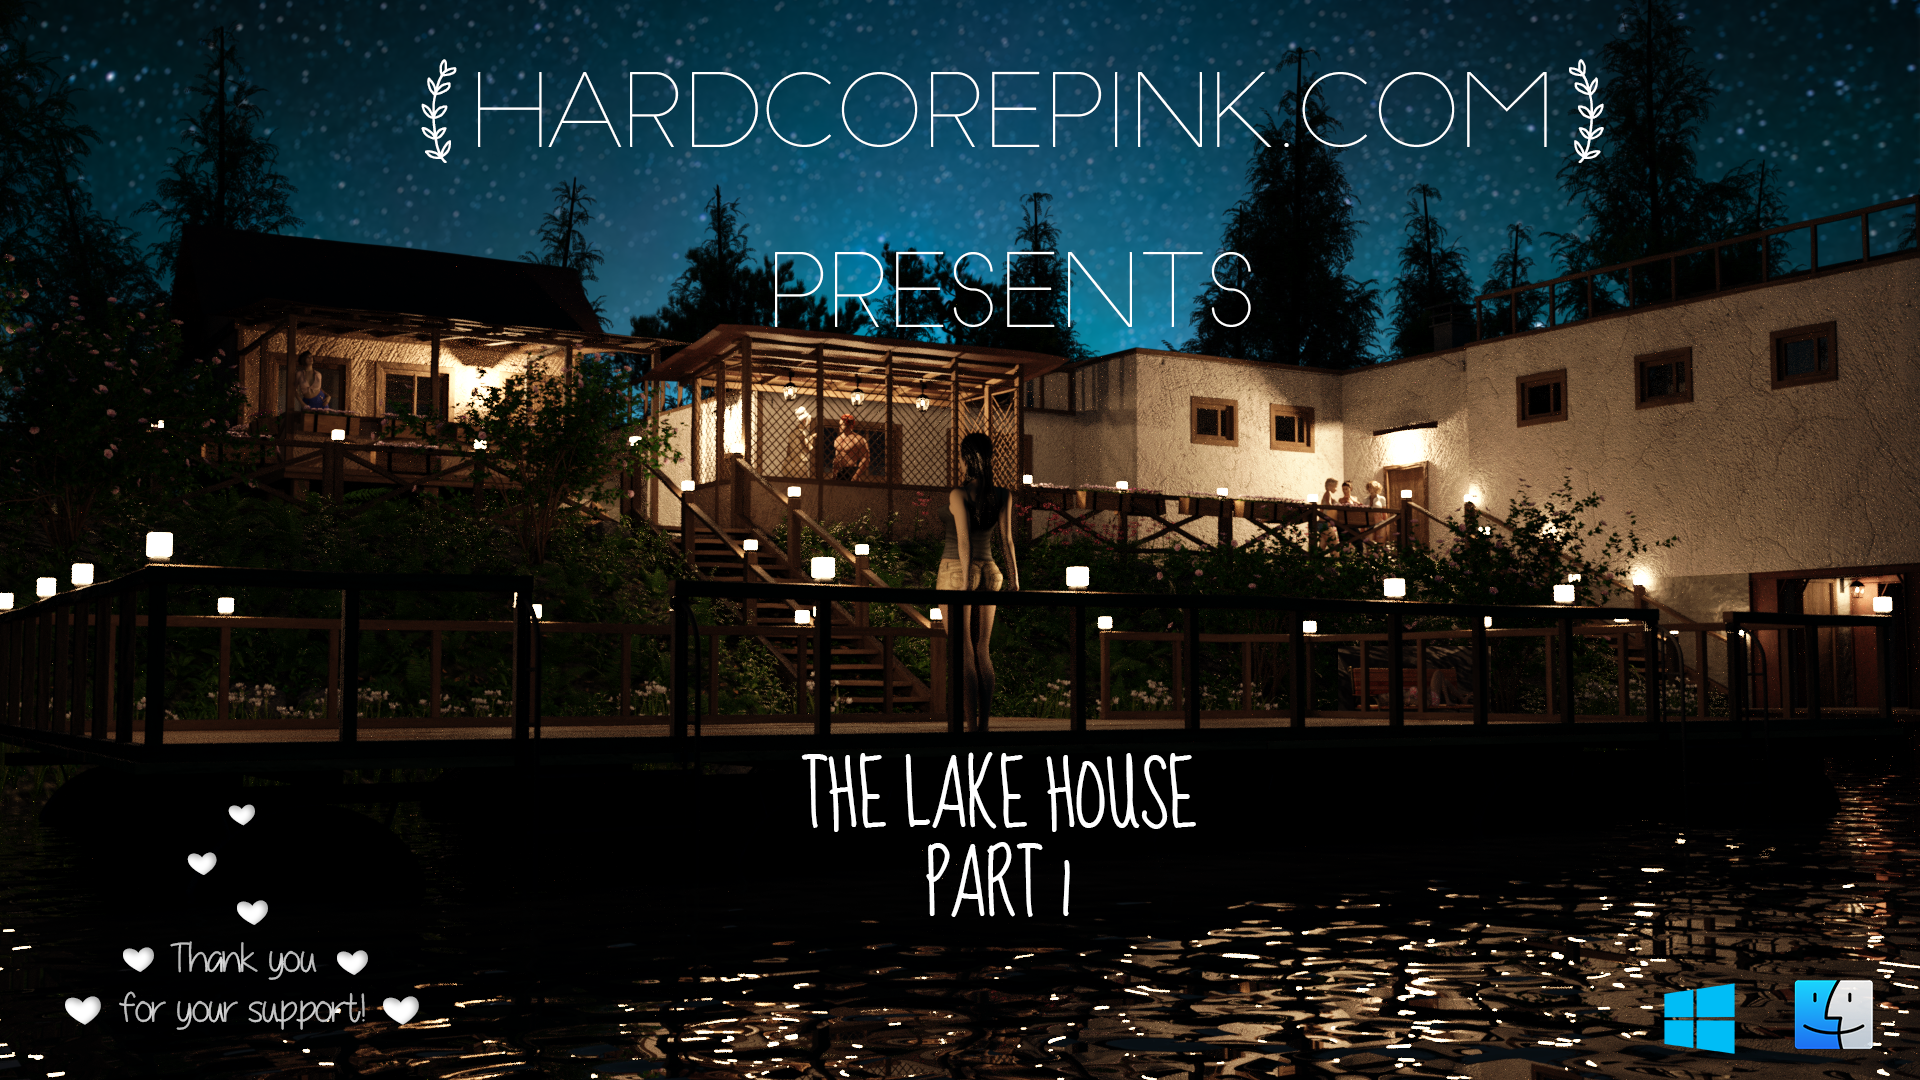 The Lake House - Part 1 - Adult Comic (NSFW)